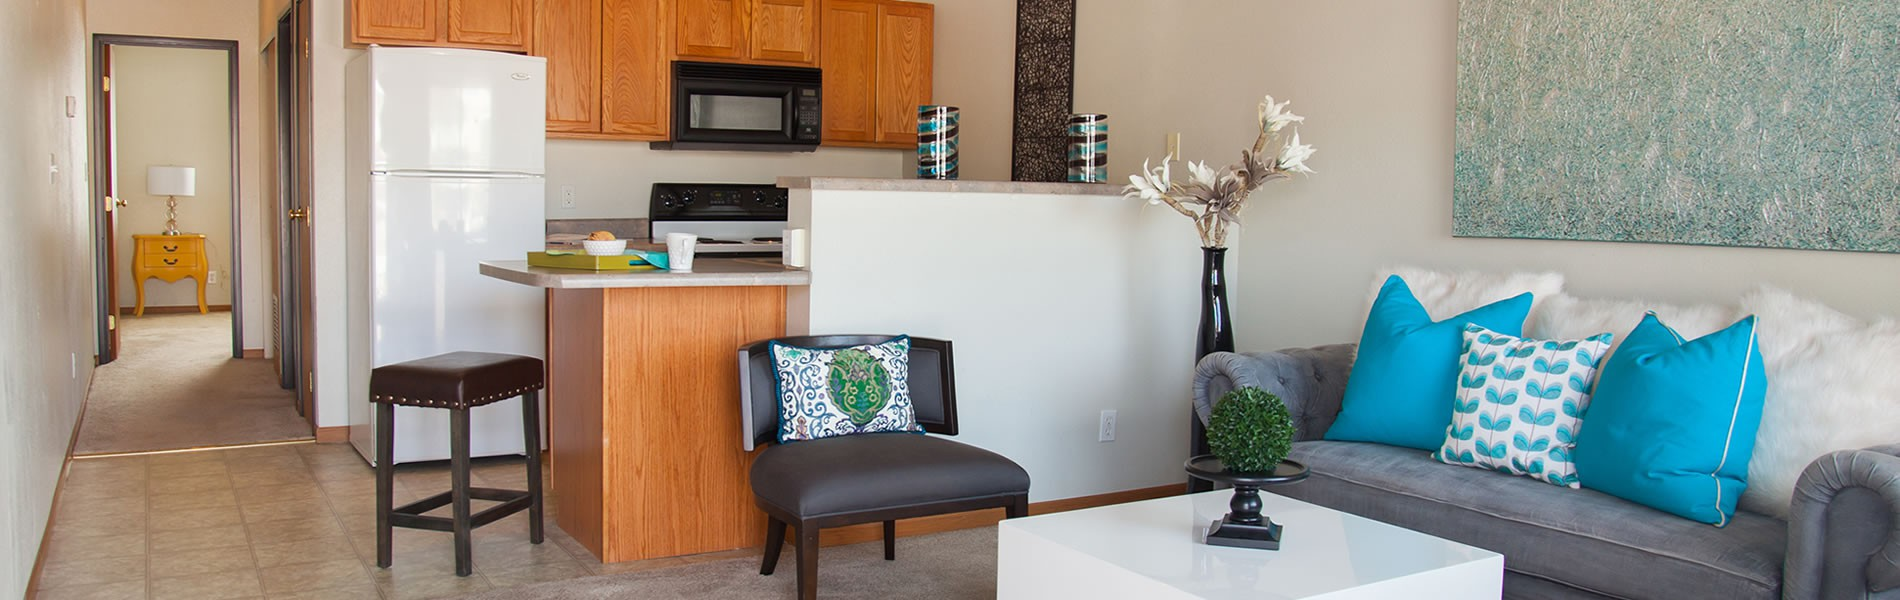 Apartments in Columbia MO with Utilities Included DBC Rentals